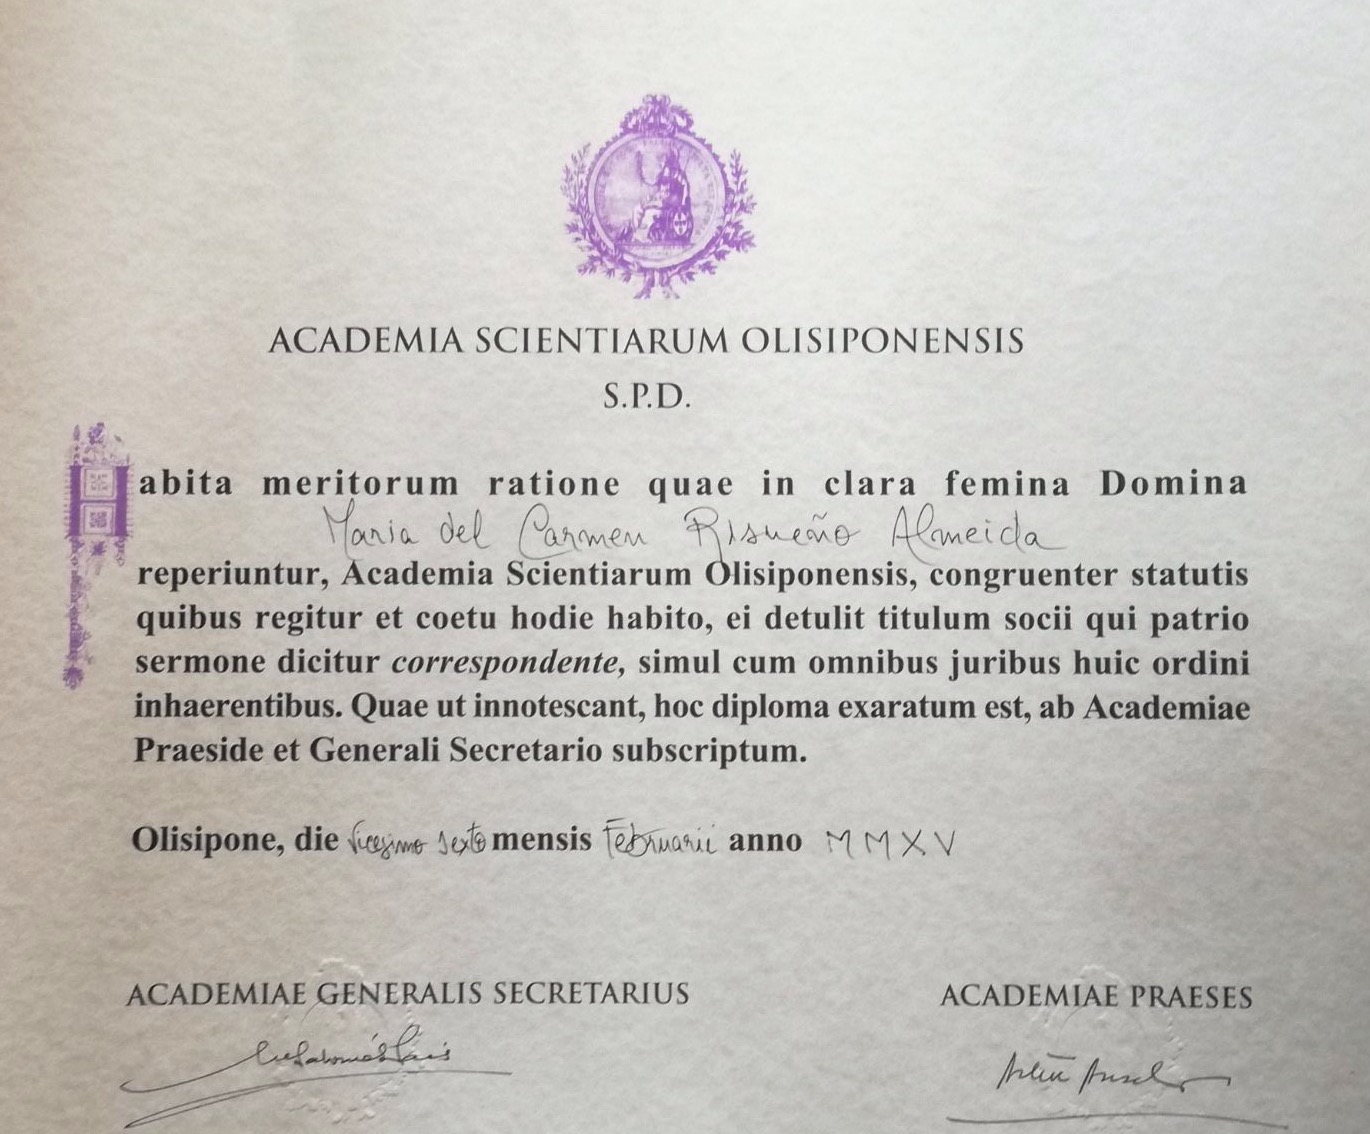 Appointment as member of the Lisbon Academy of Sciences